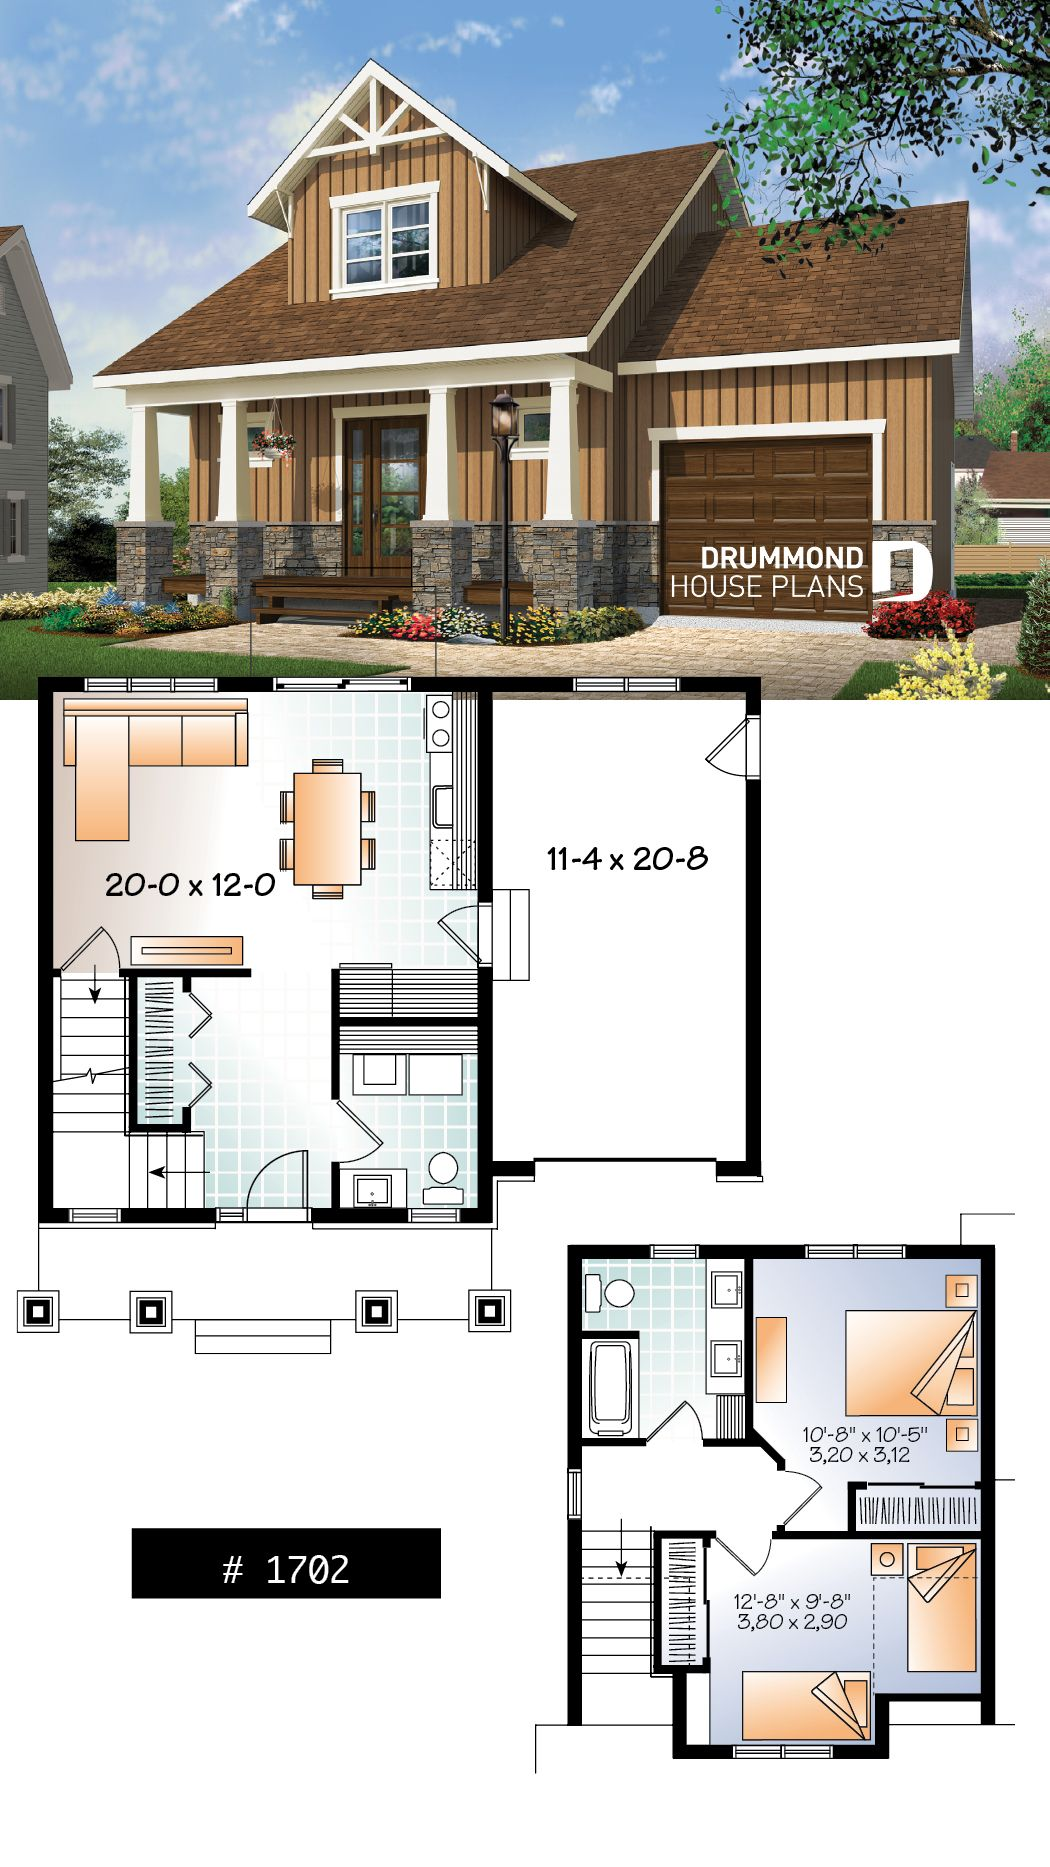 Discover The Plan 1702 Delphine Which Will Please You For Its 2 Bedrooms And For Its Farmhouse Styles Craftsman House Plans Small House Plans Country House Plans